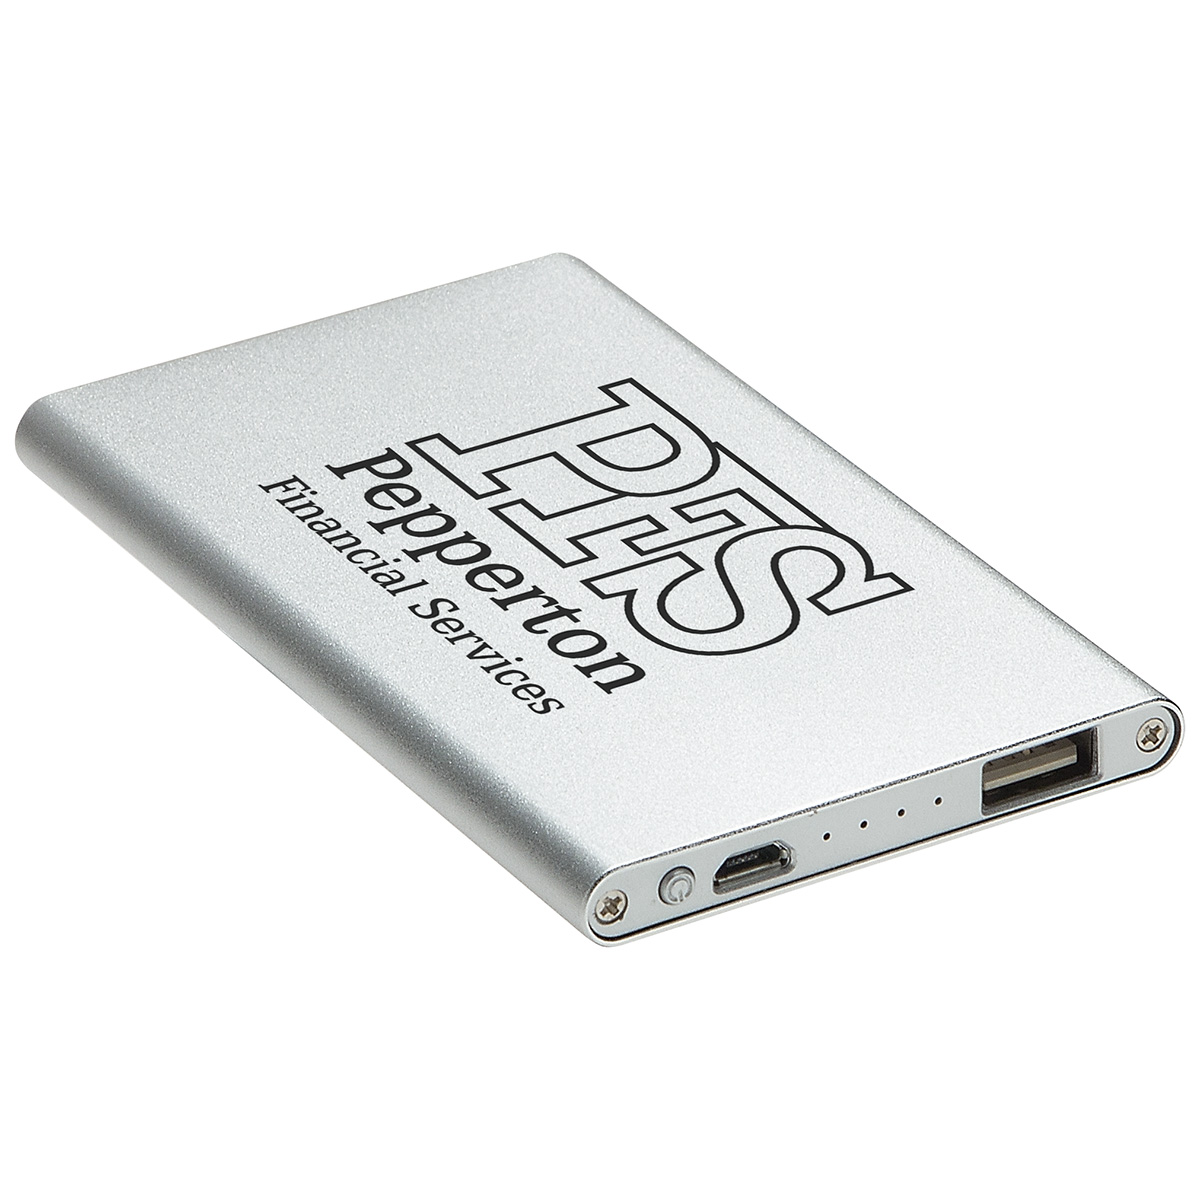 Sleek Design - 2000mAh Aluminum Power Bank, EPB-20S5, Laser Engraved Logo